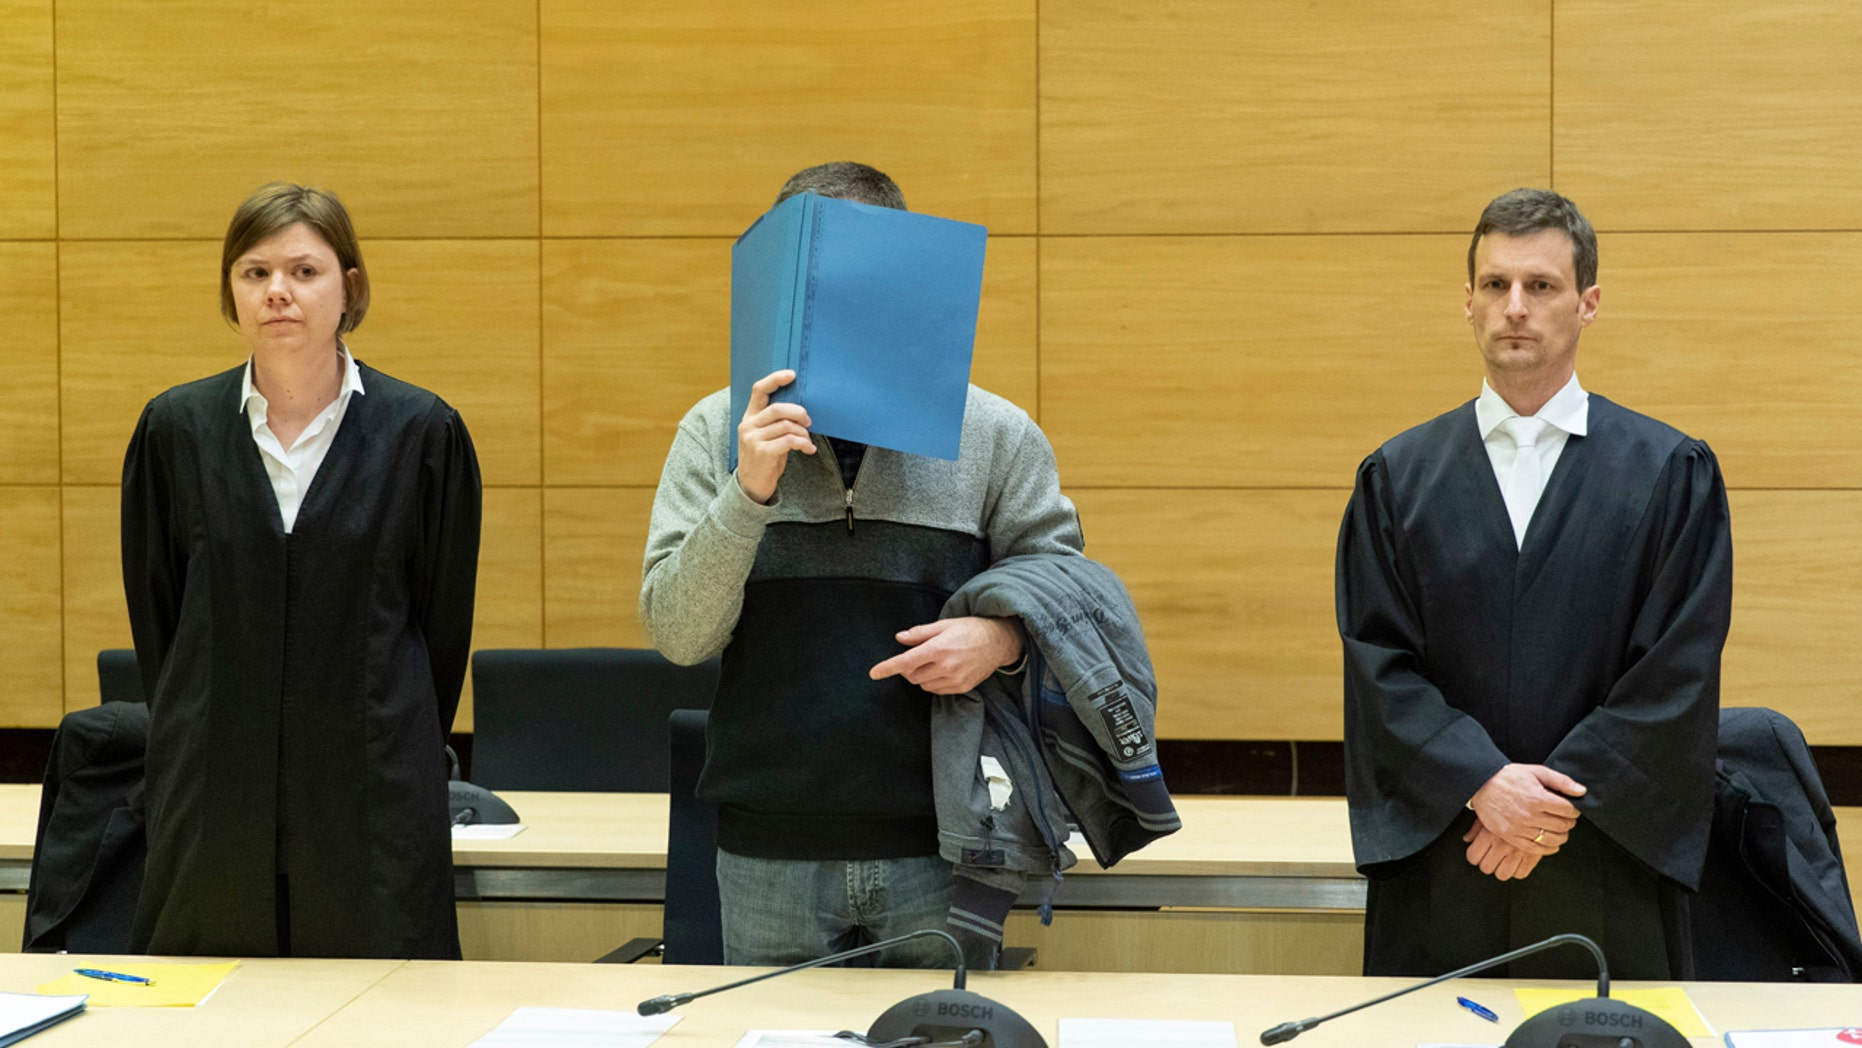 A 57-year old defendant hides his face at the courtroom in Bielefeld, Germany, Thursday, March 7, 2019.